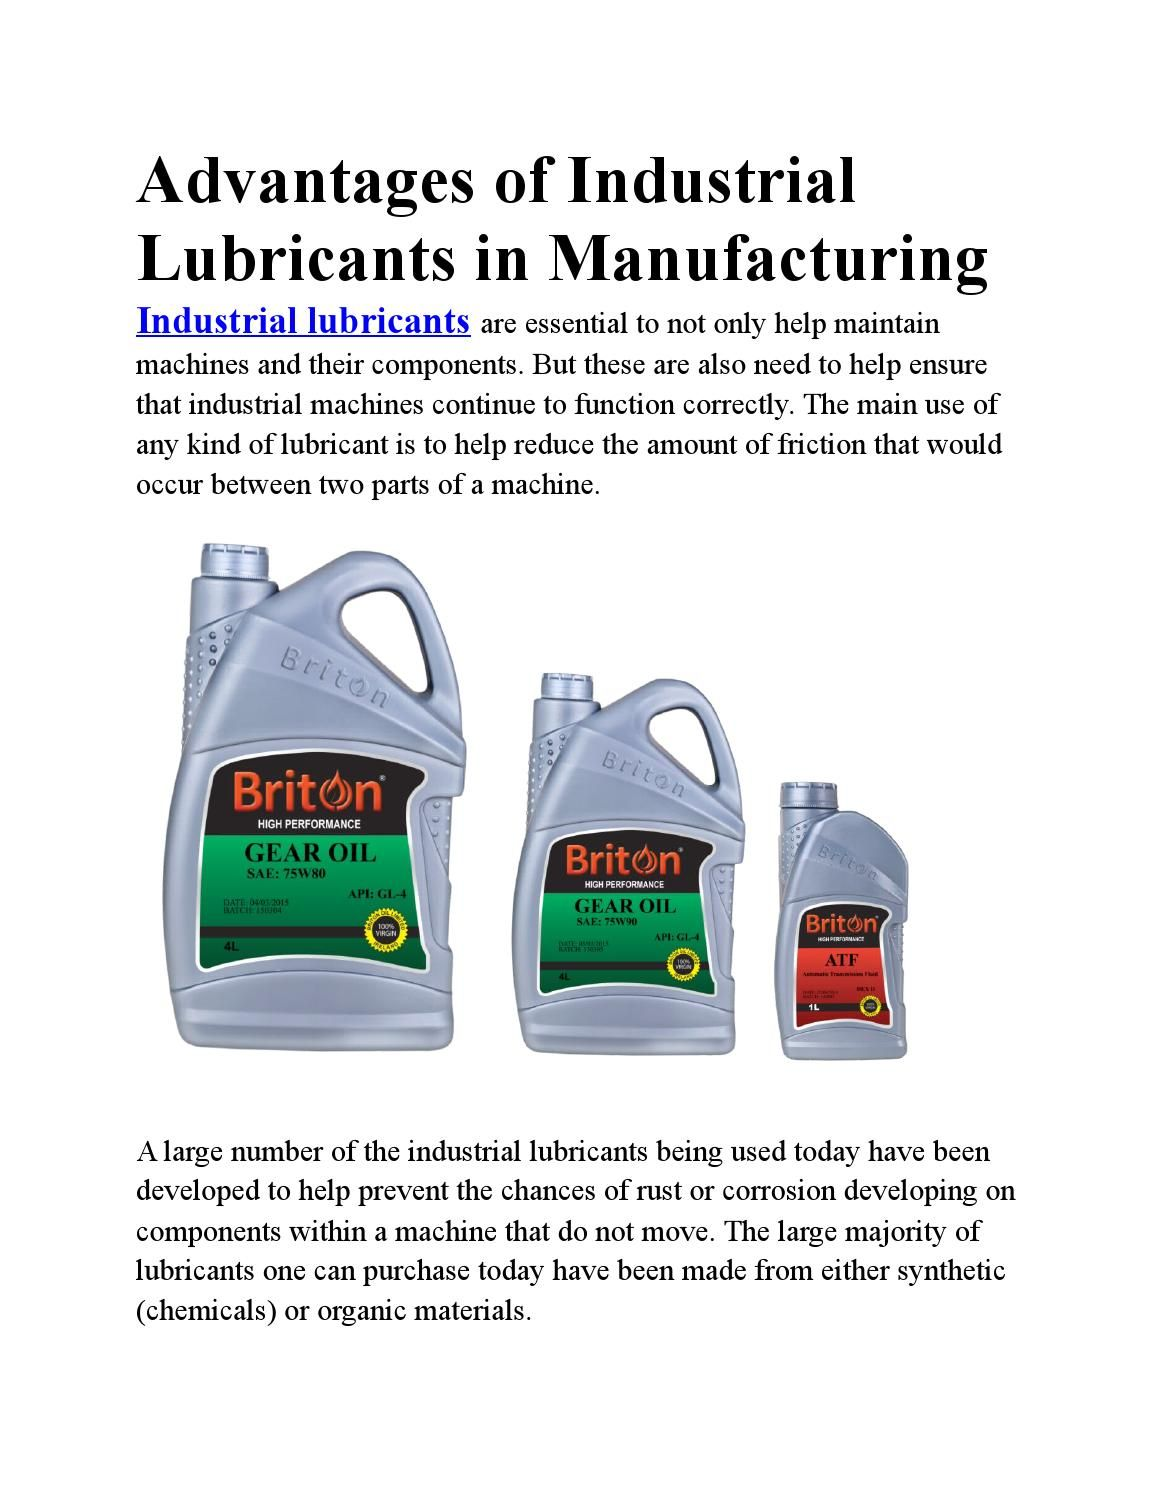 Advantages of industrial lubricants in manufacturing